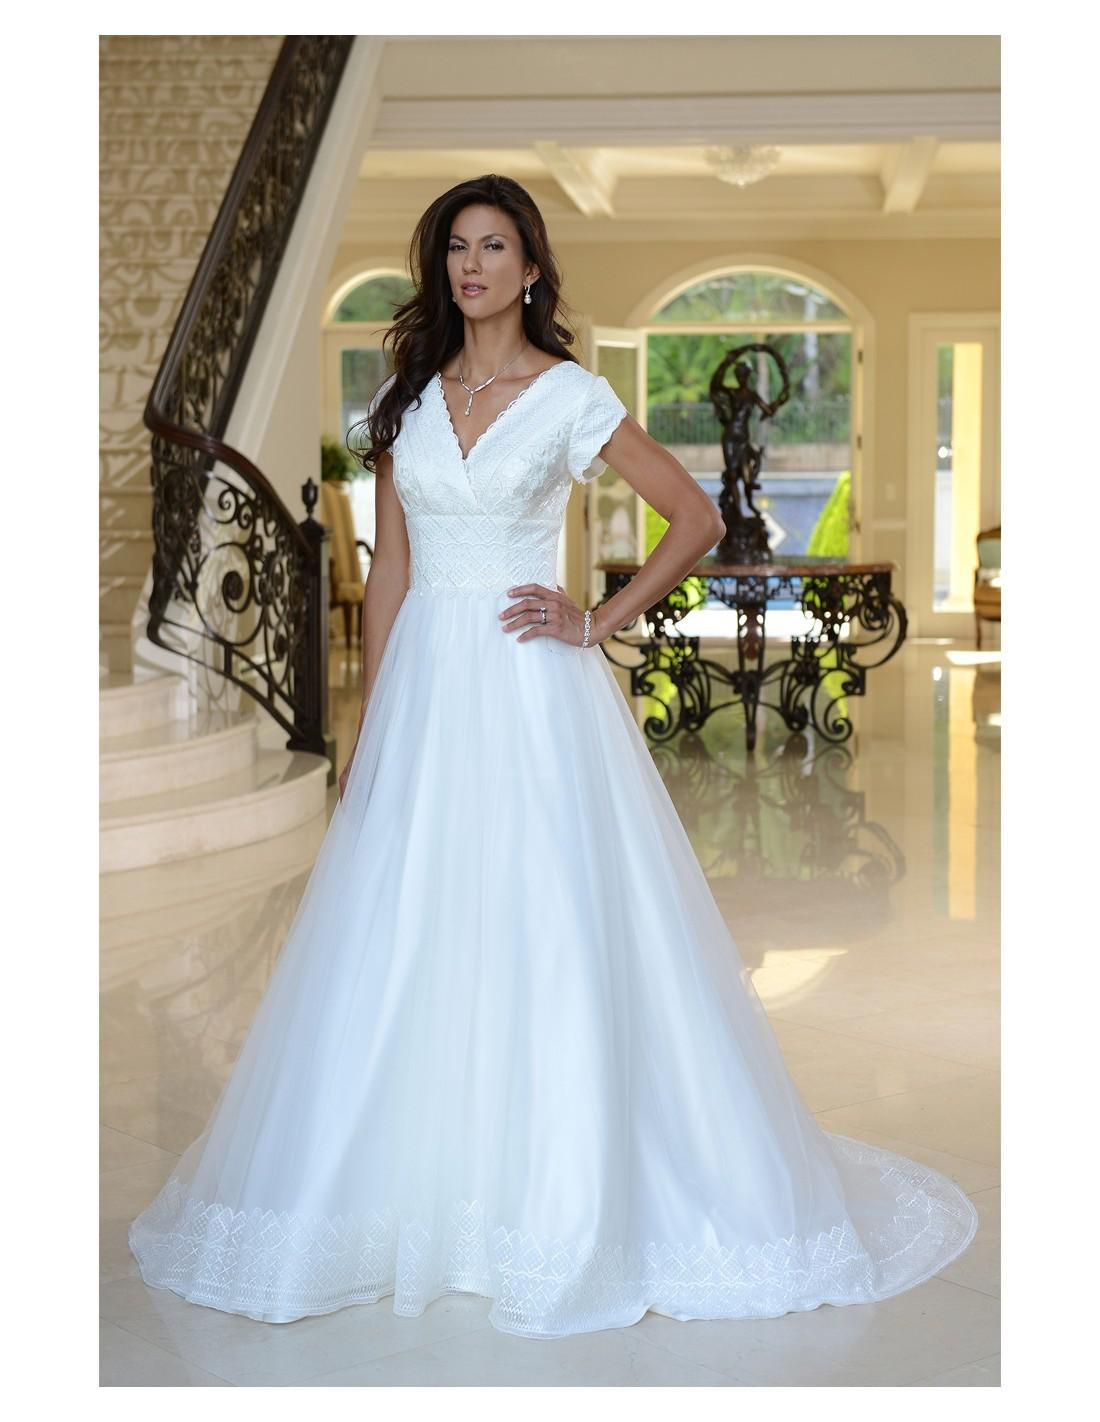 Venus Bridal TB7743 Modest Wedding Dress from A Closet Full of Dresses